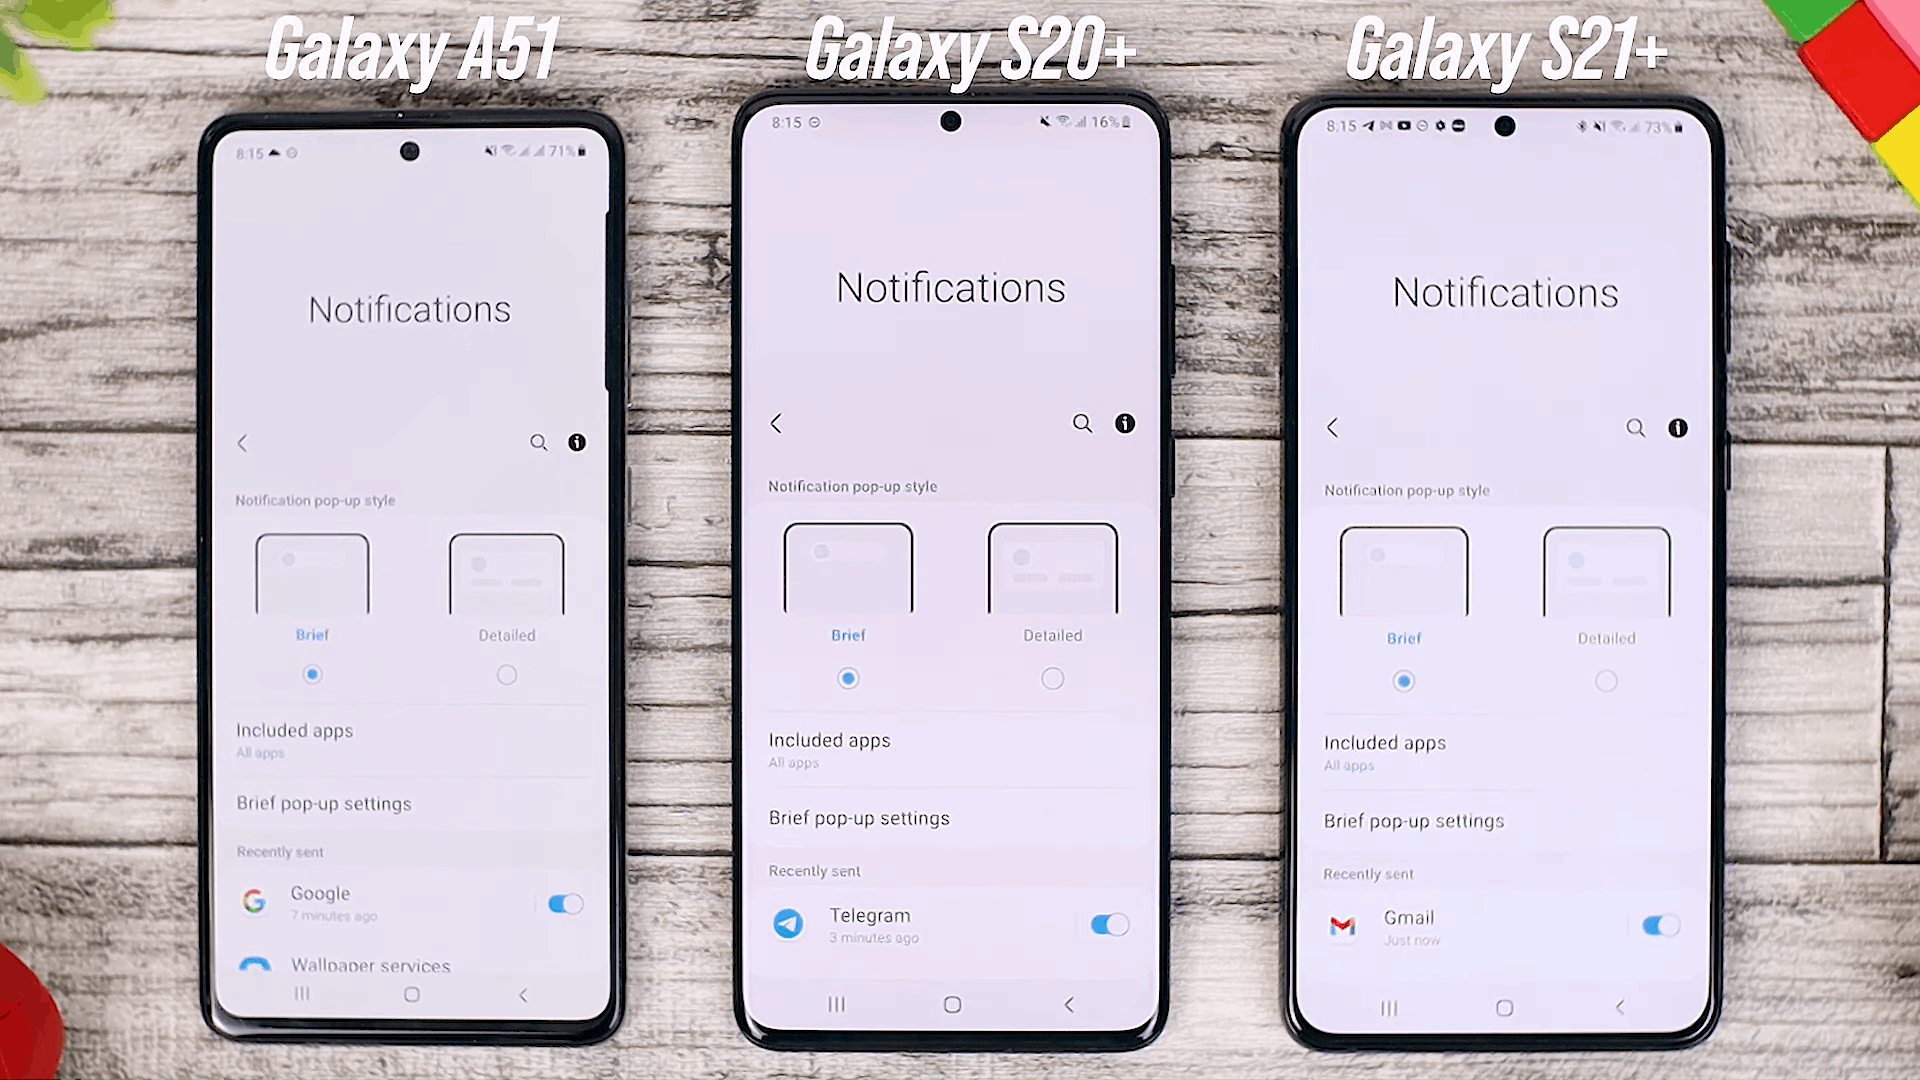 Brief Notification Option - Fitur One UI 3.0 di Galaxy A51 dan Perbandingannya dengan Galaxy S20+ dan One UI 3.1 di Galaxy S21+